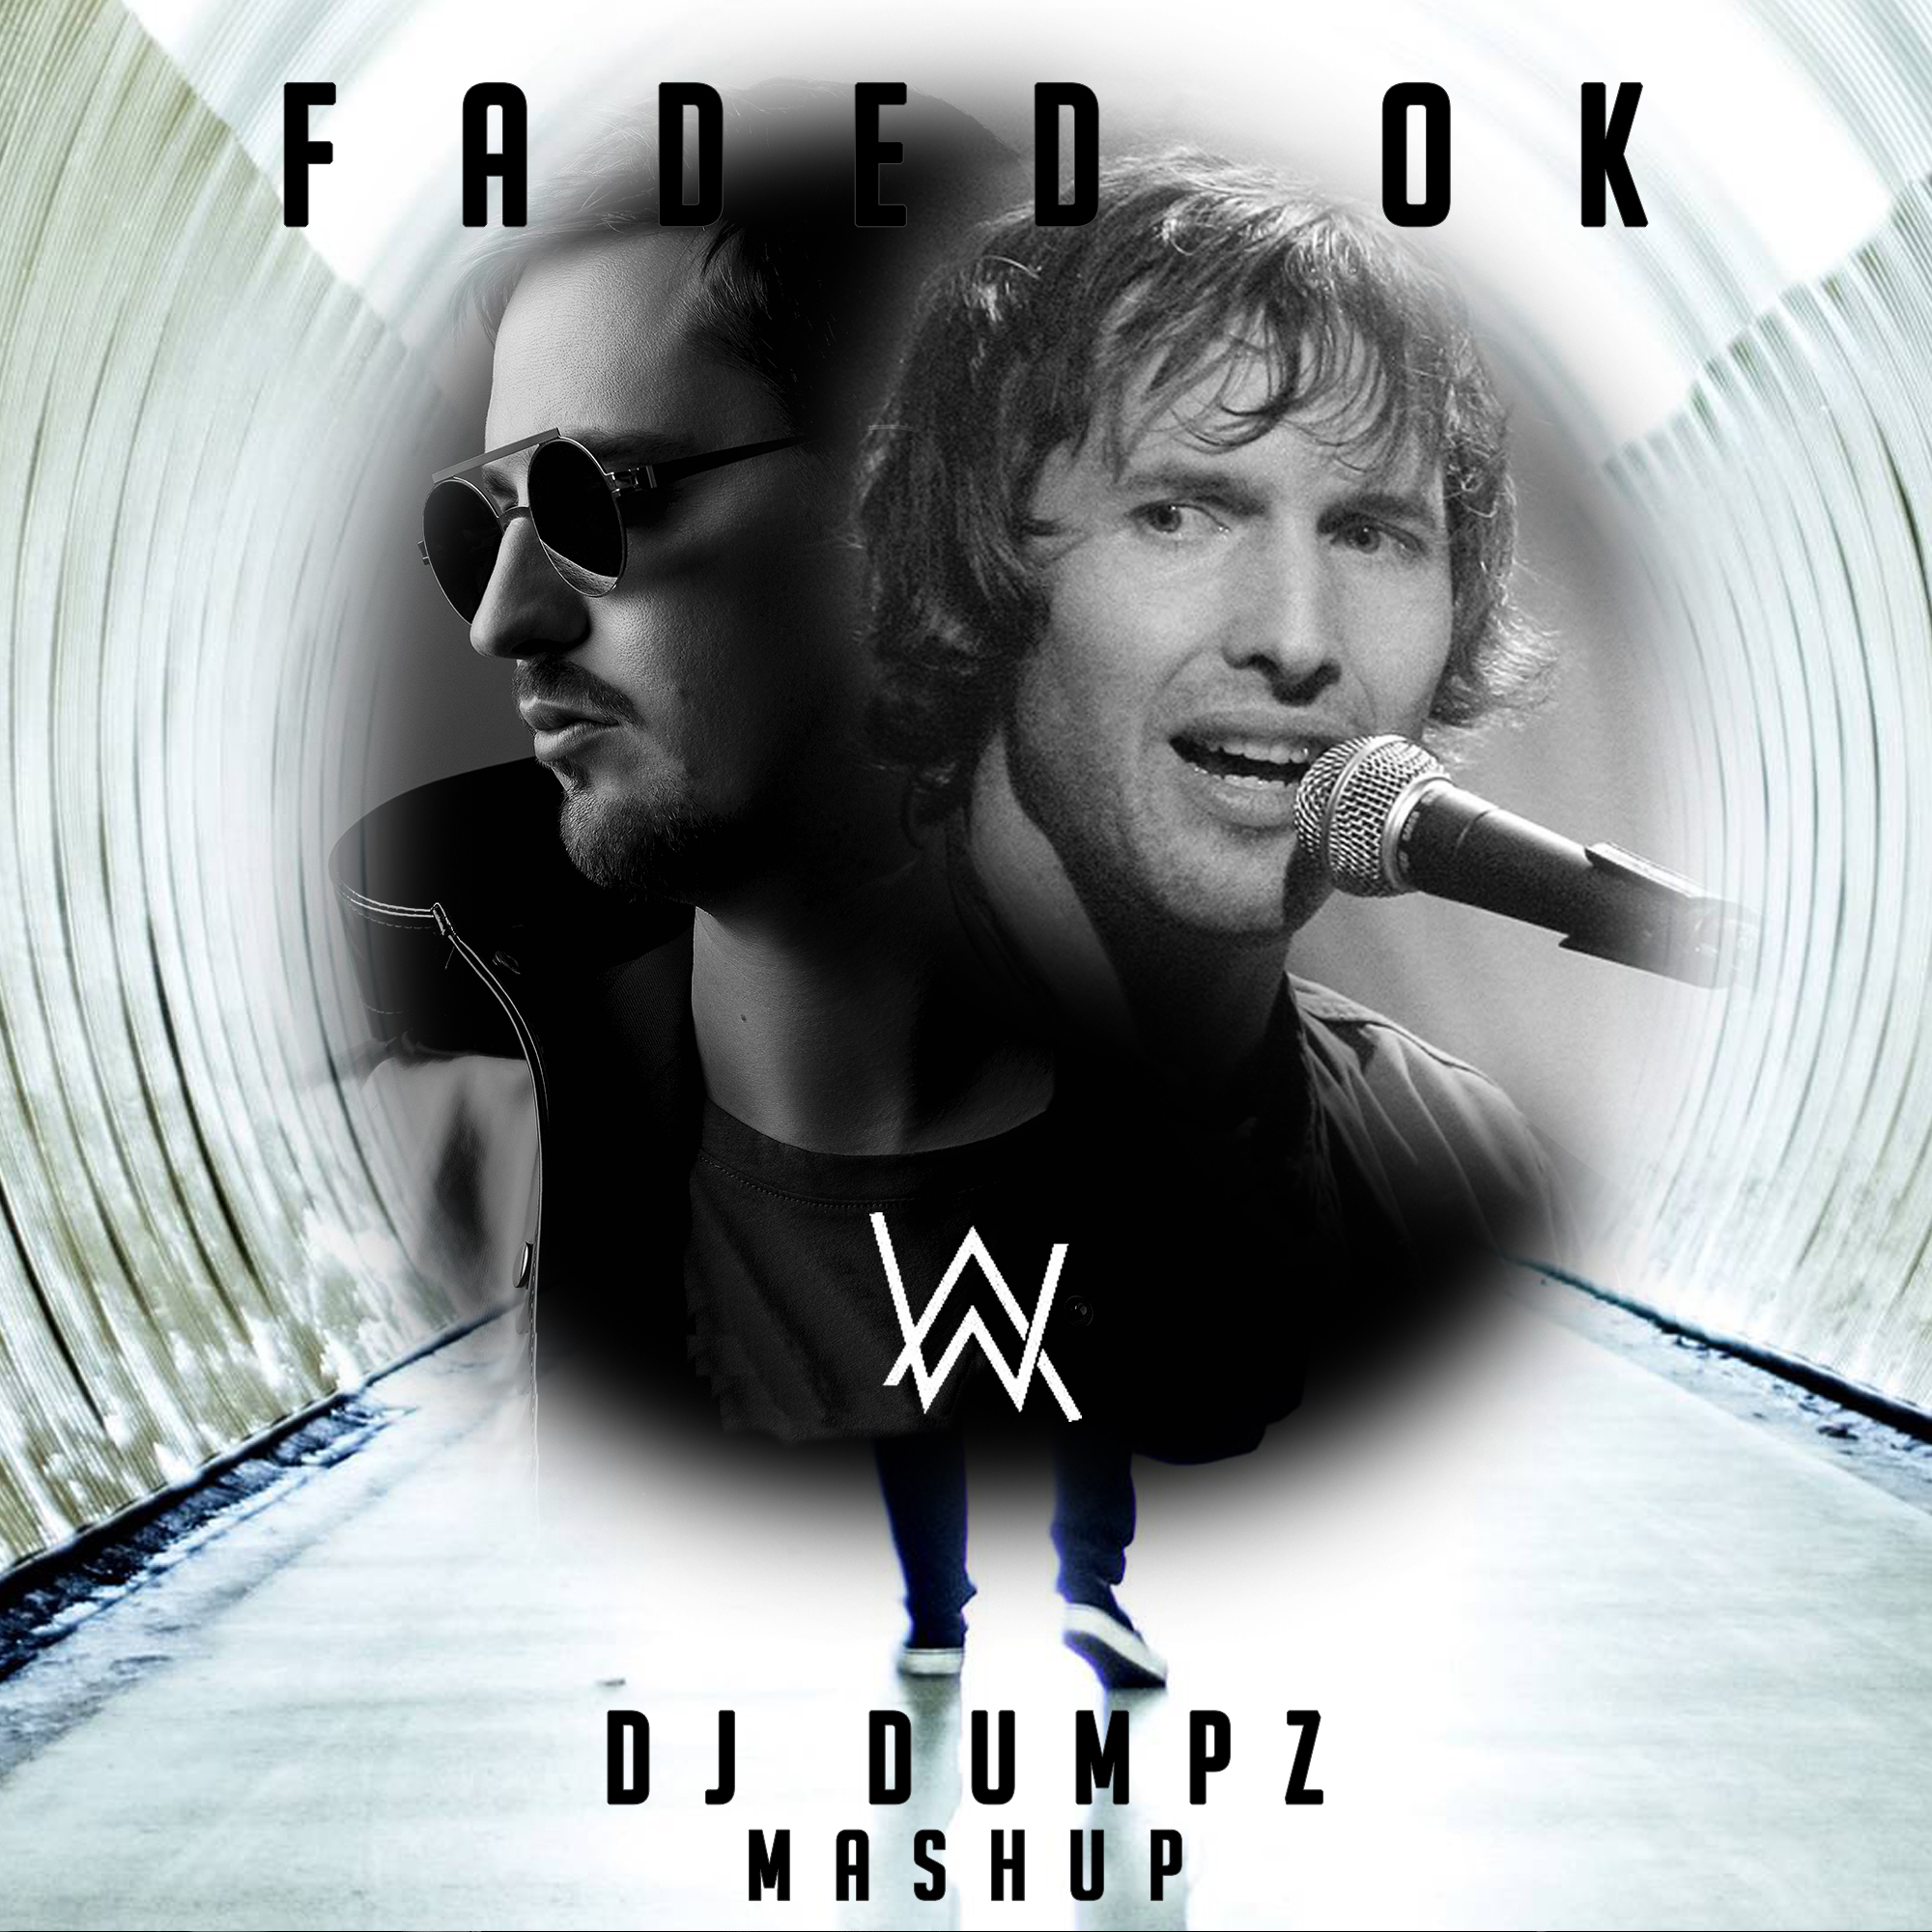 DJ Dumpz - Faded Ok (Robin Schulz ft James Blunt vs Alan Walker)